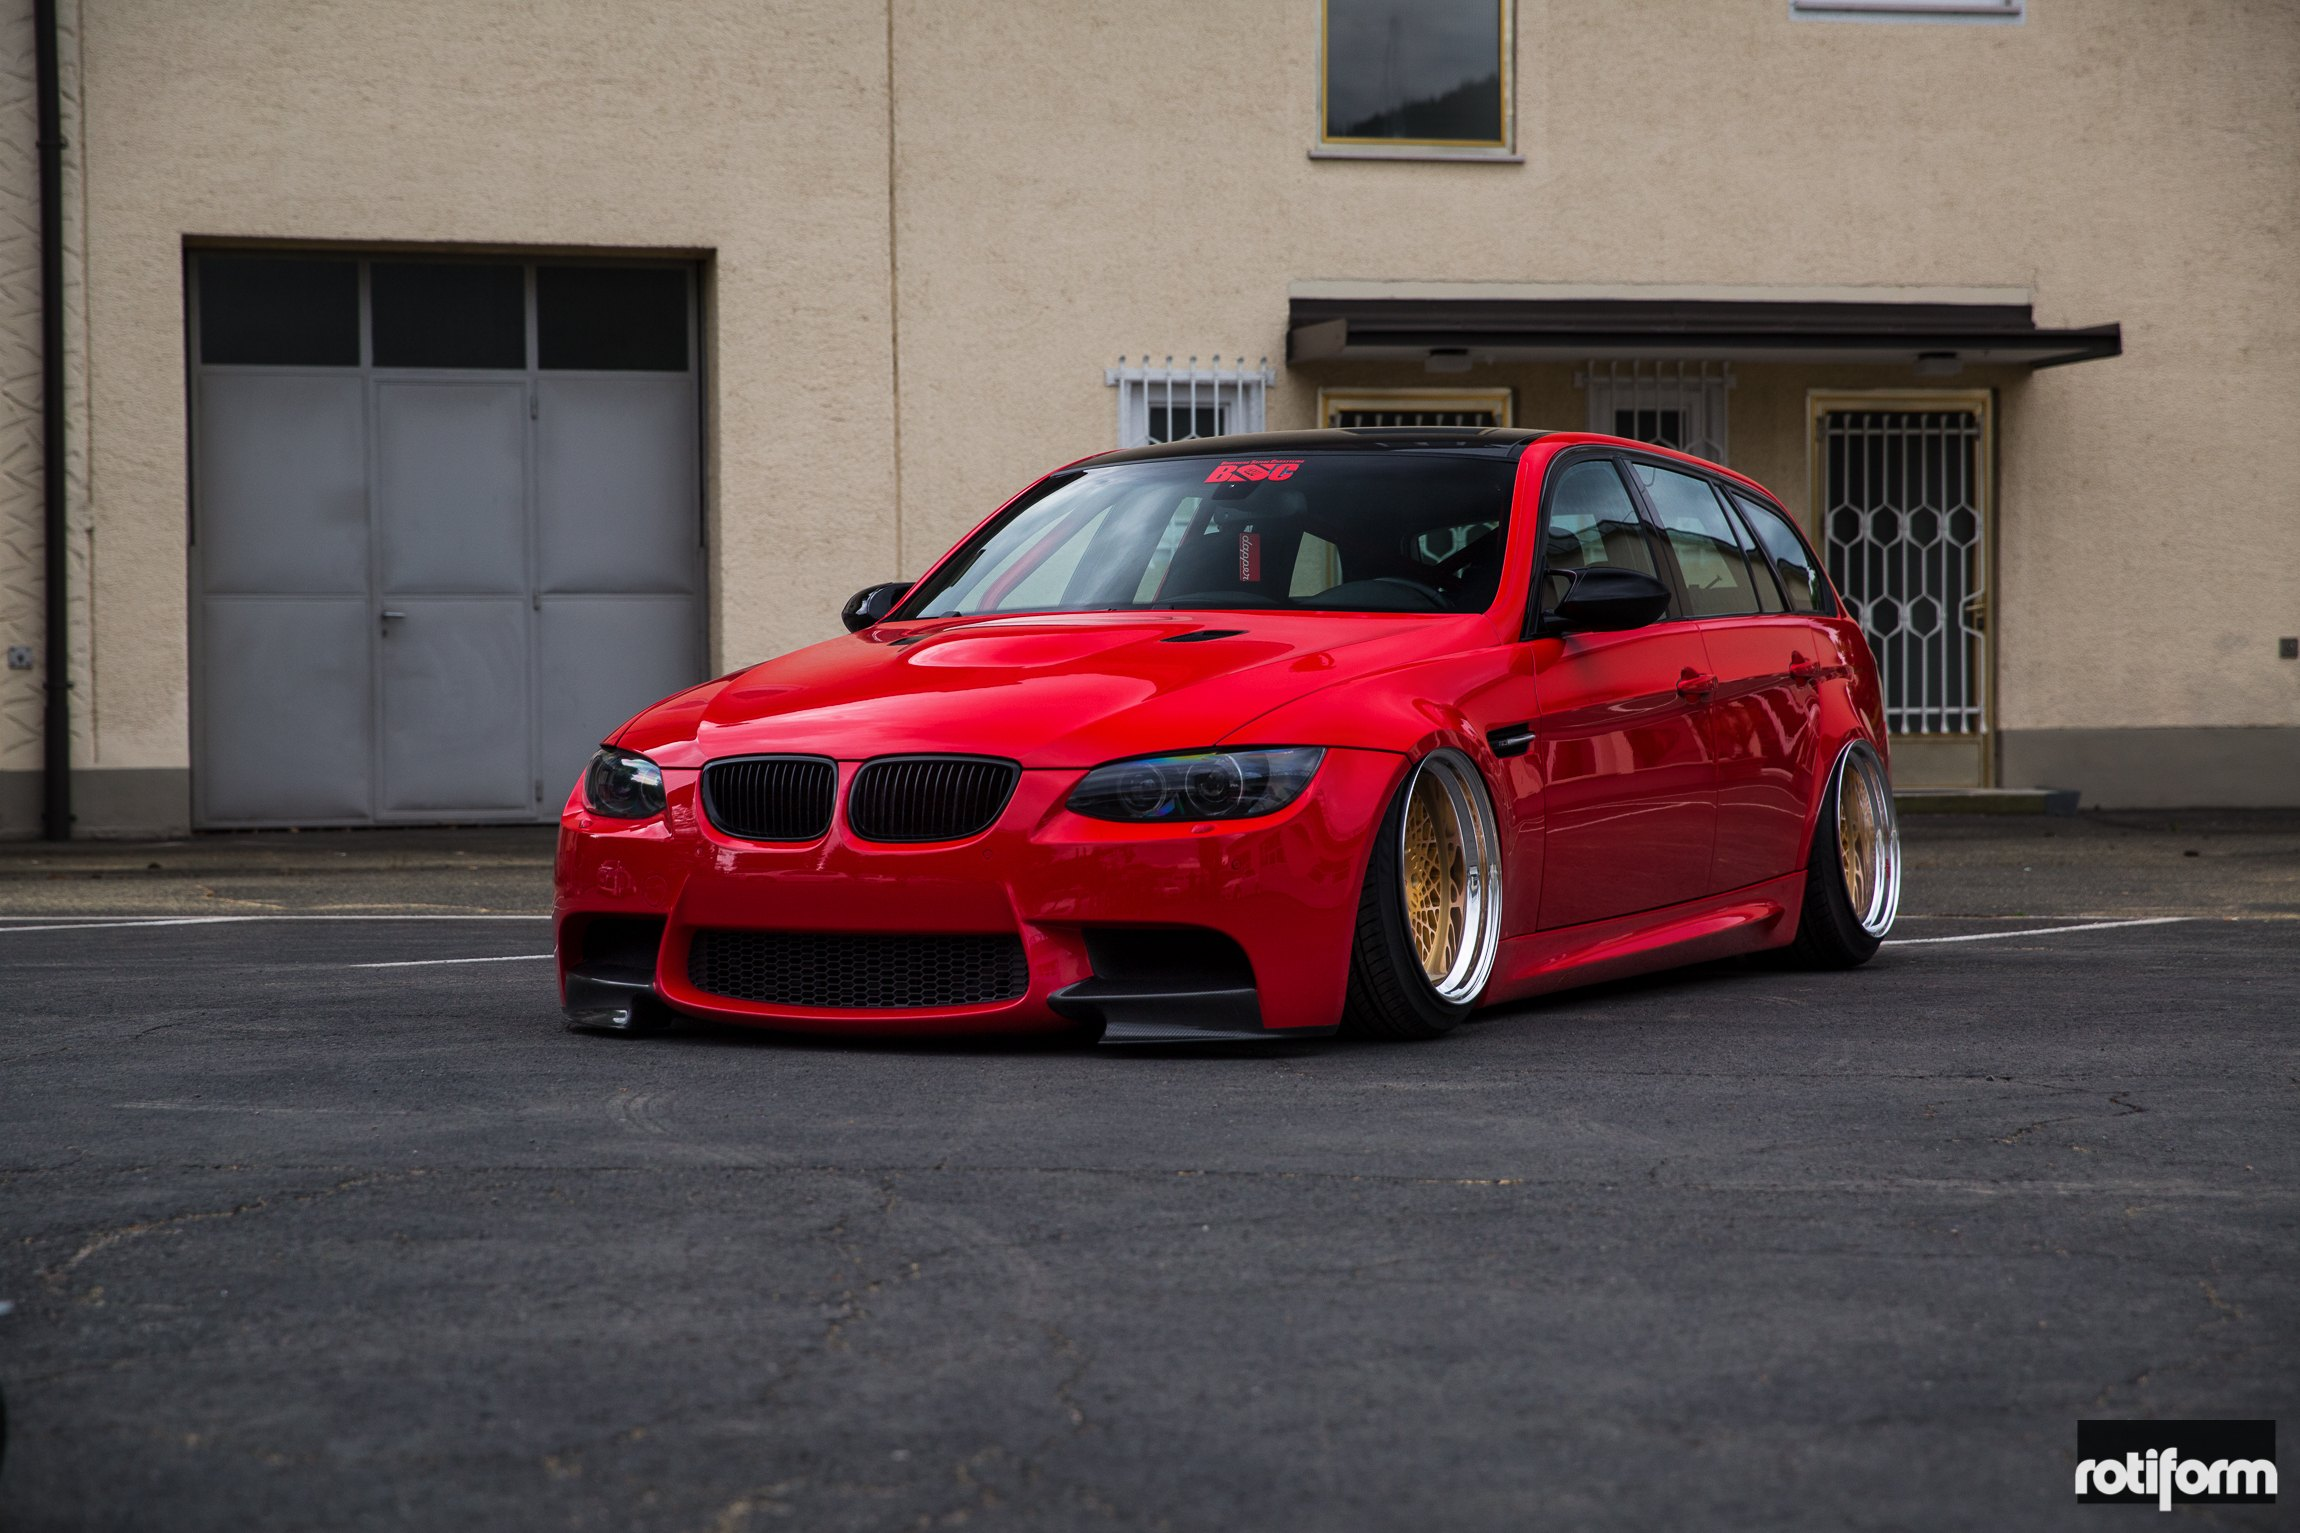 Stanced Out Bmw M3 Touring With Roll Cage And Rotiform Custom Wheels Carid Com Gallery